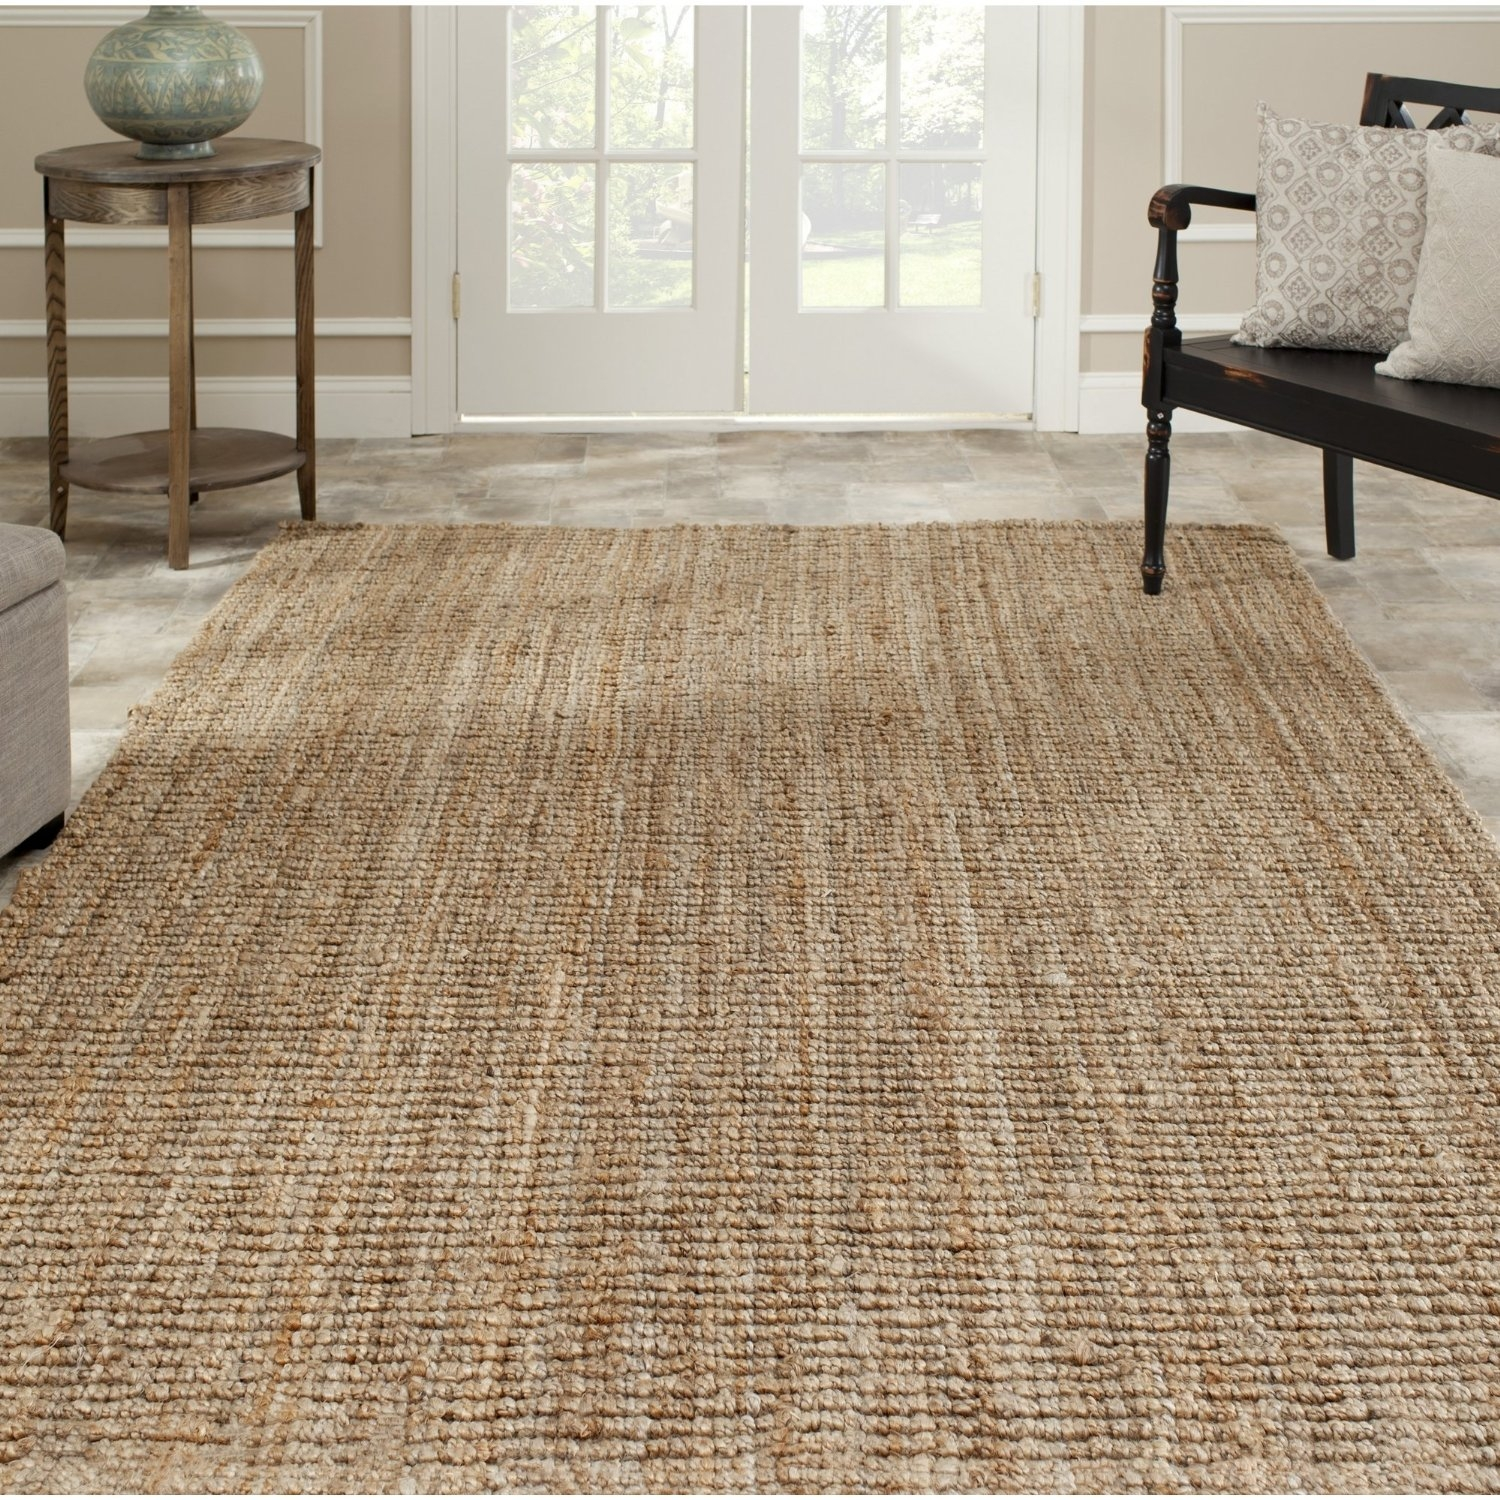 Inspiration About Cool Area Rugs Pretty Inspiration Floral Area Rugs 5×8  Modern Regarding Jute